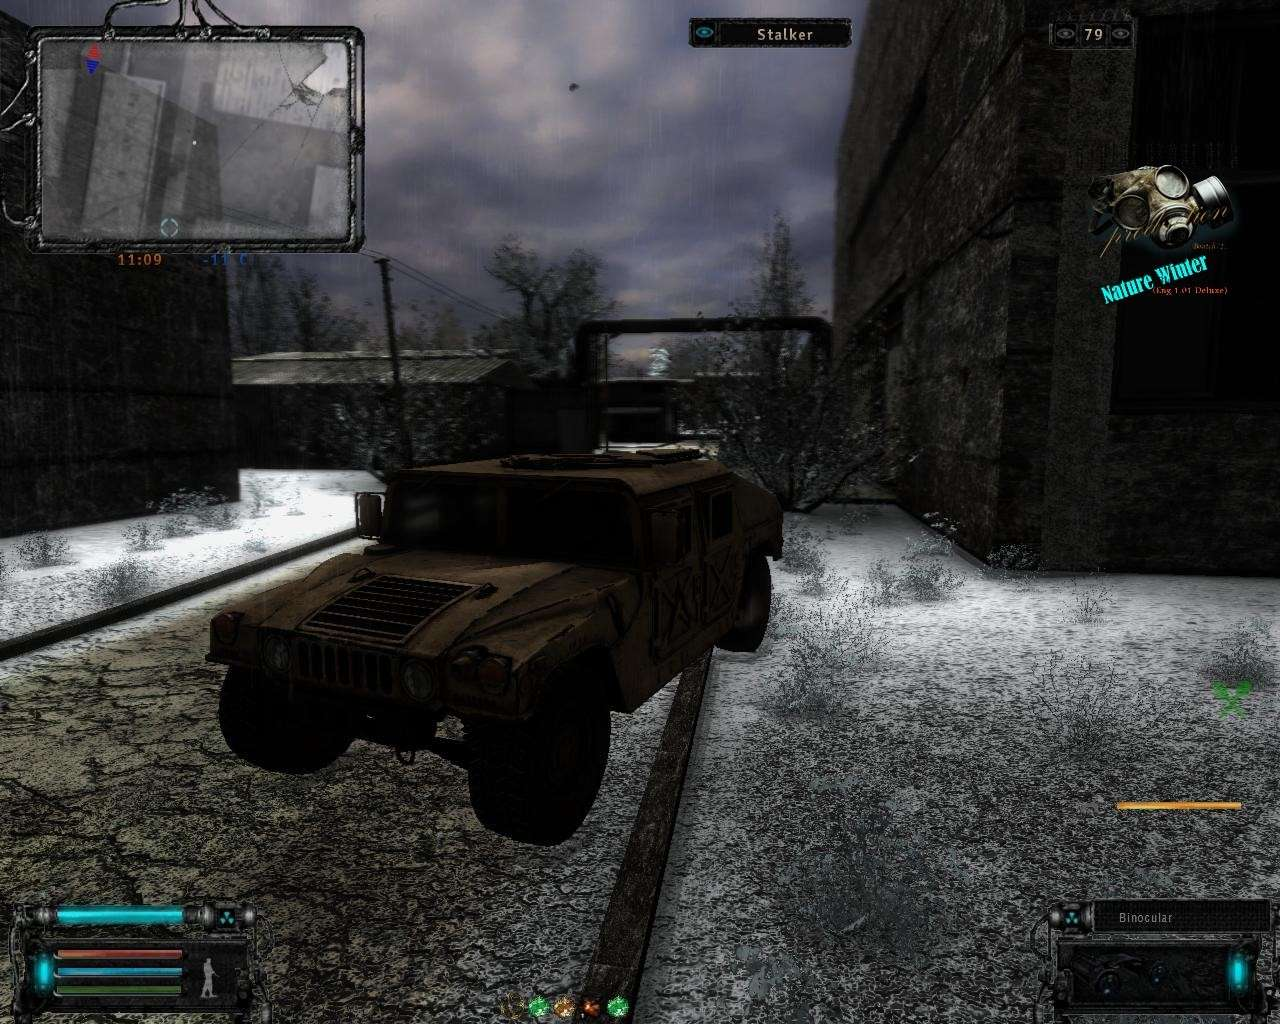 Nature Winter 2.3 Black Edition (eng 1.01 Deluxe) Images Gallery! Serie:1# Ss_bo106